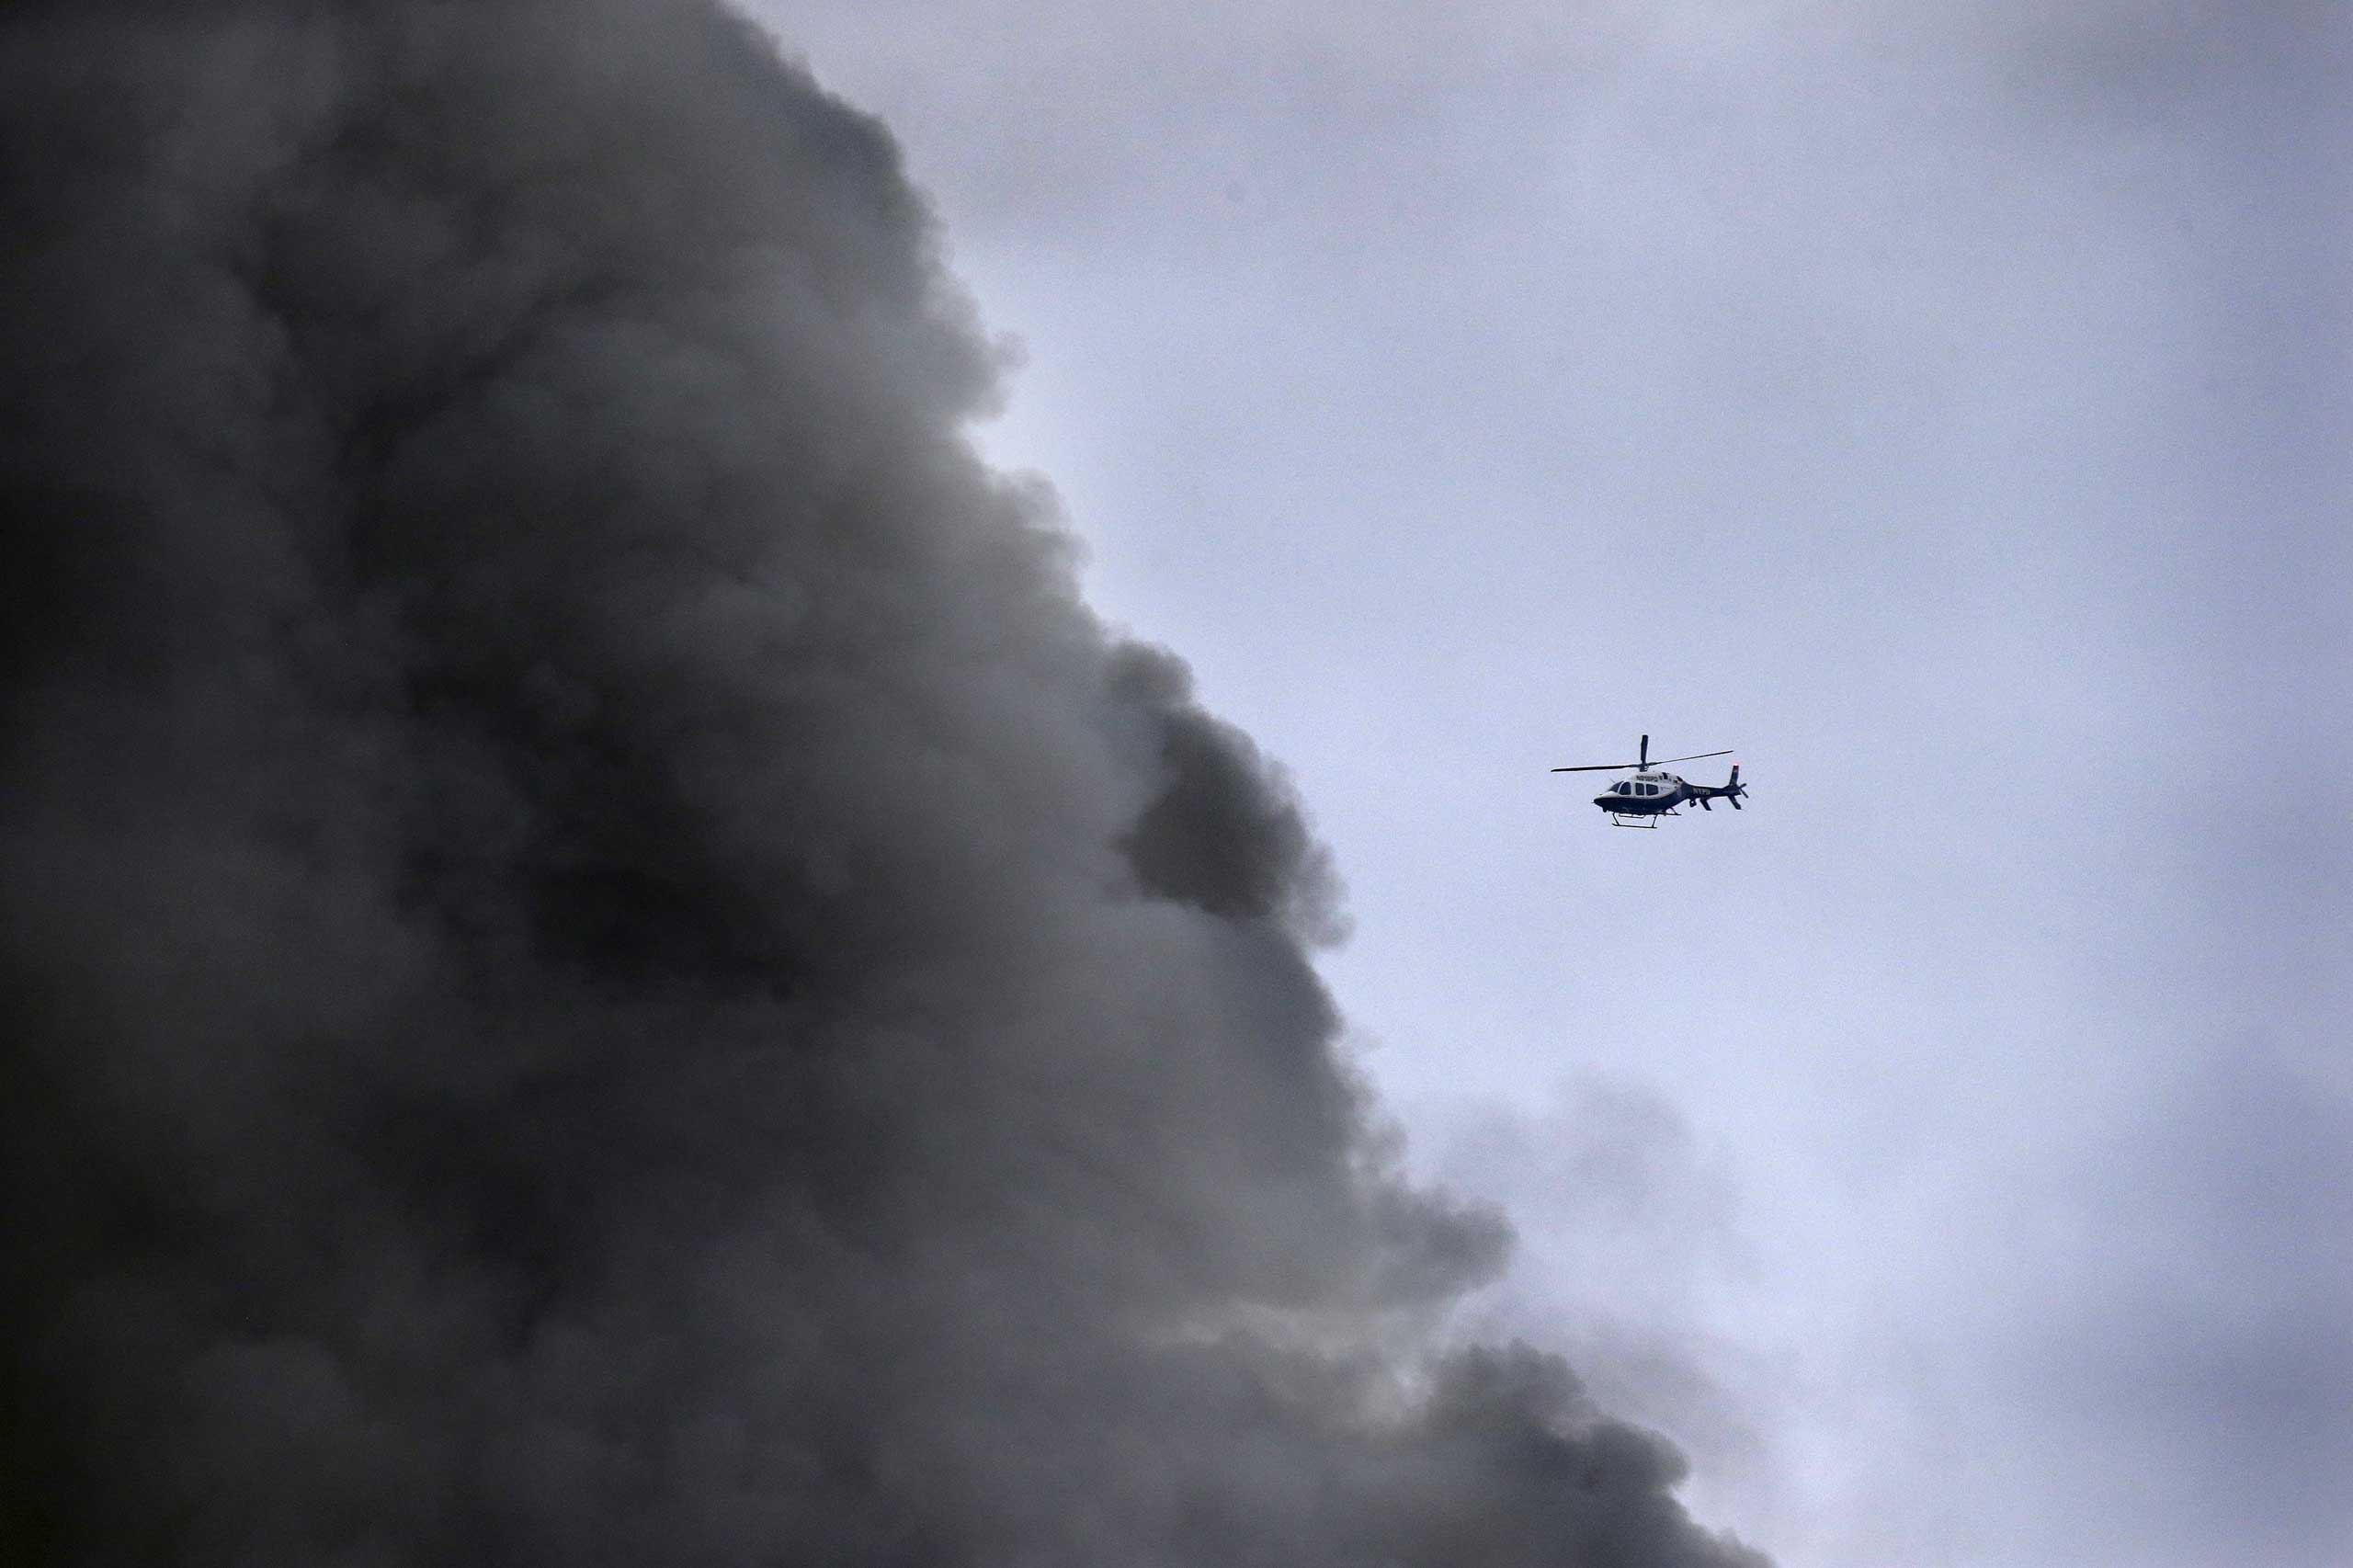 A New York City Police helicopter flies near billowing smoke above the site of a residential apartment building collapse and fire in the East Village neighborhood of New York City on March 26, 2015.